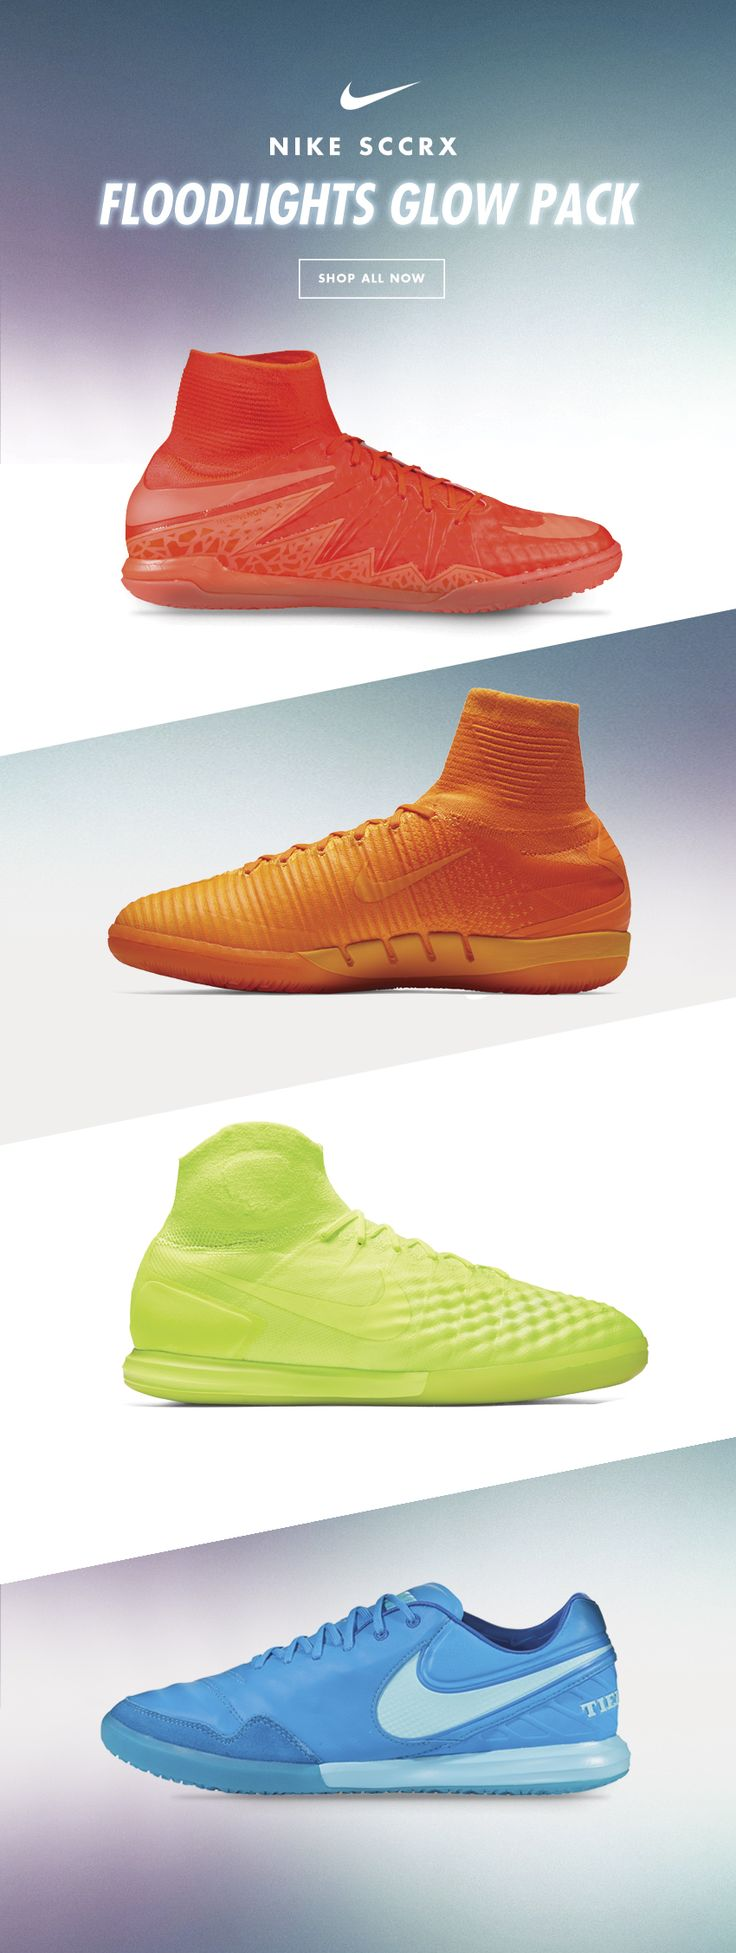 SCCRX Floodlights Glow pack Featuring new vivid hues for all the Nike SCCRX silos (Hypervenom X, Mercurial X, Magista X and Tiempo X), the pack also includes an unique attribute: each shoe has a glow-in-the-dark Nike Swoosh logo and outsole to enhance visibility in closed spaces and night hours. Now available at WorldSoccerShop.com